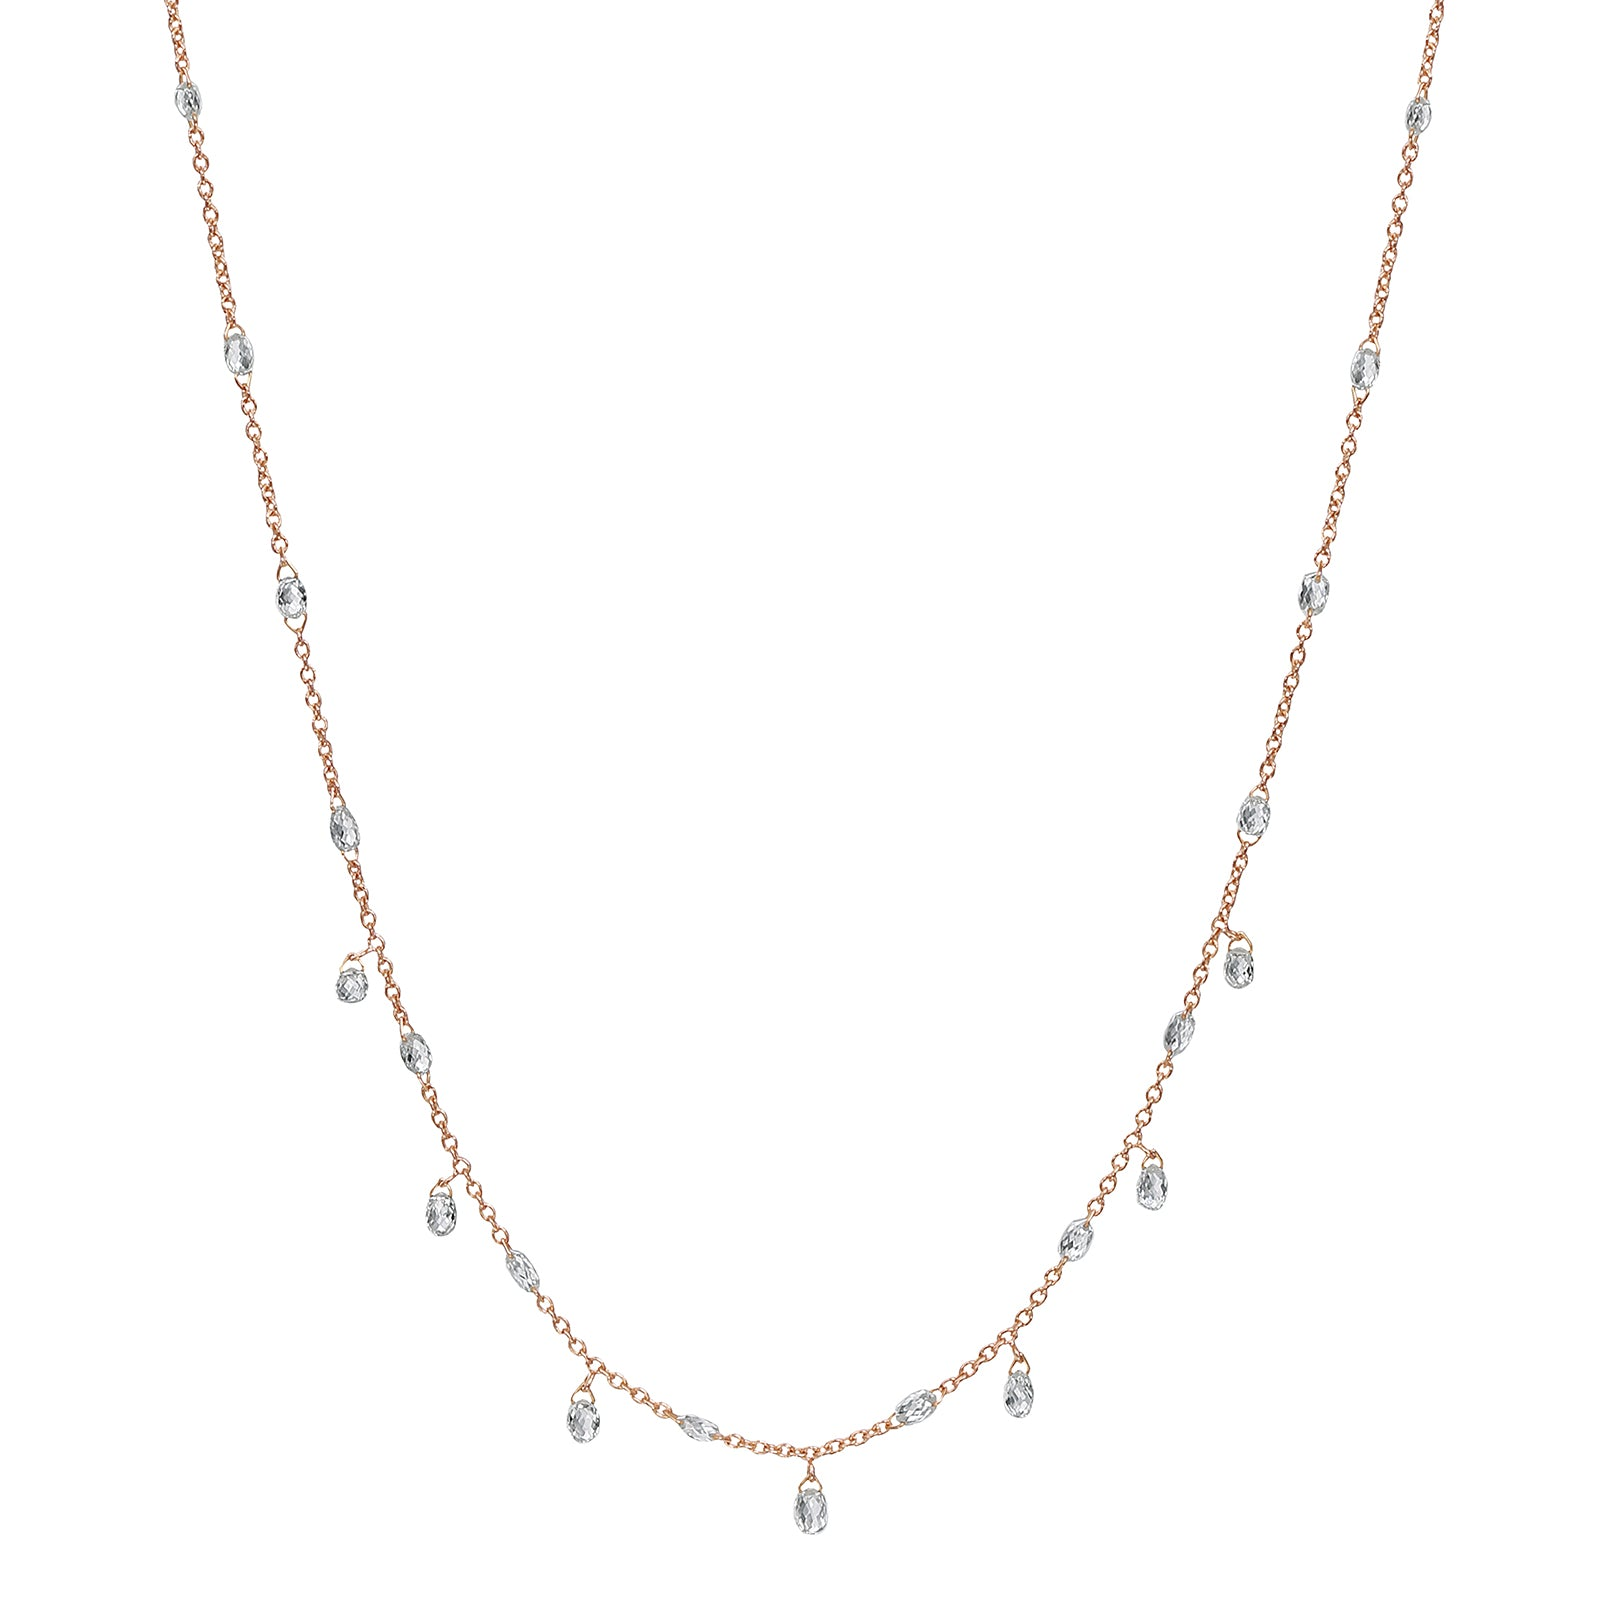 Nina Runsdorf Briolette Diamond Chain Necklace - Necklaces - Broken English Jewelry